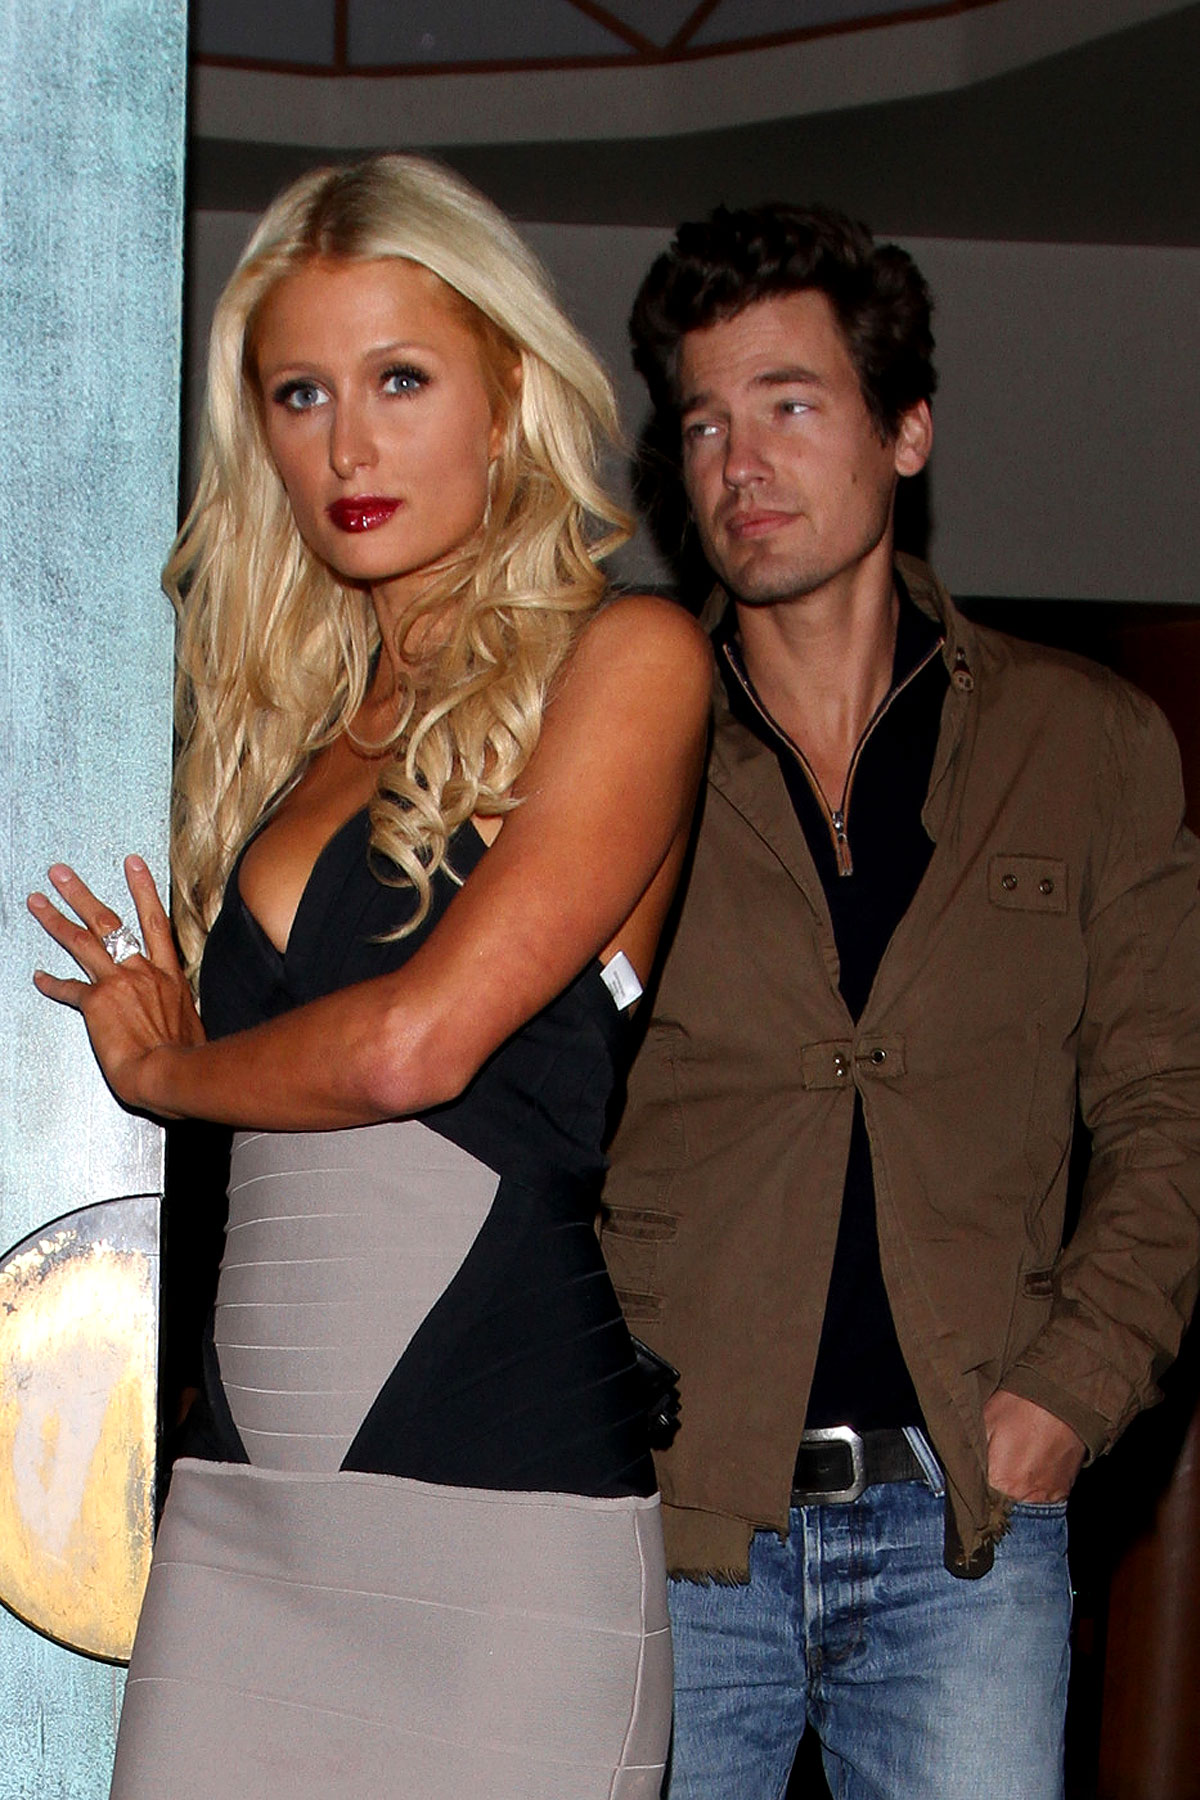 Paris Hilton and Doug Reinhardt Move On, Invite Us All to Do the Same (PHOTOS)